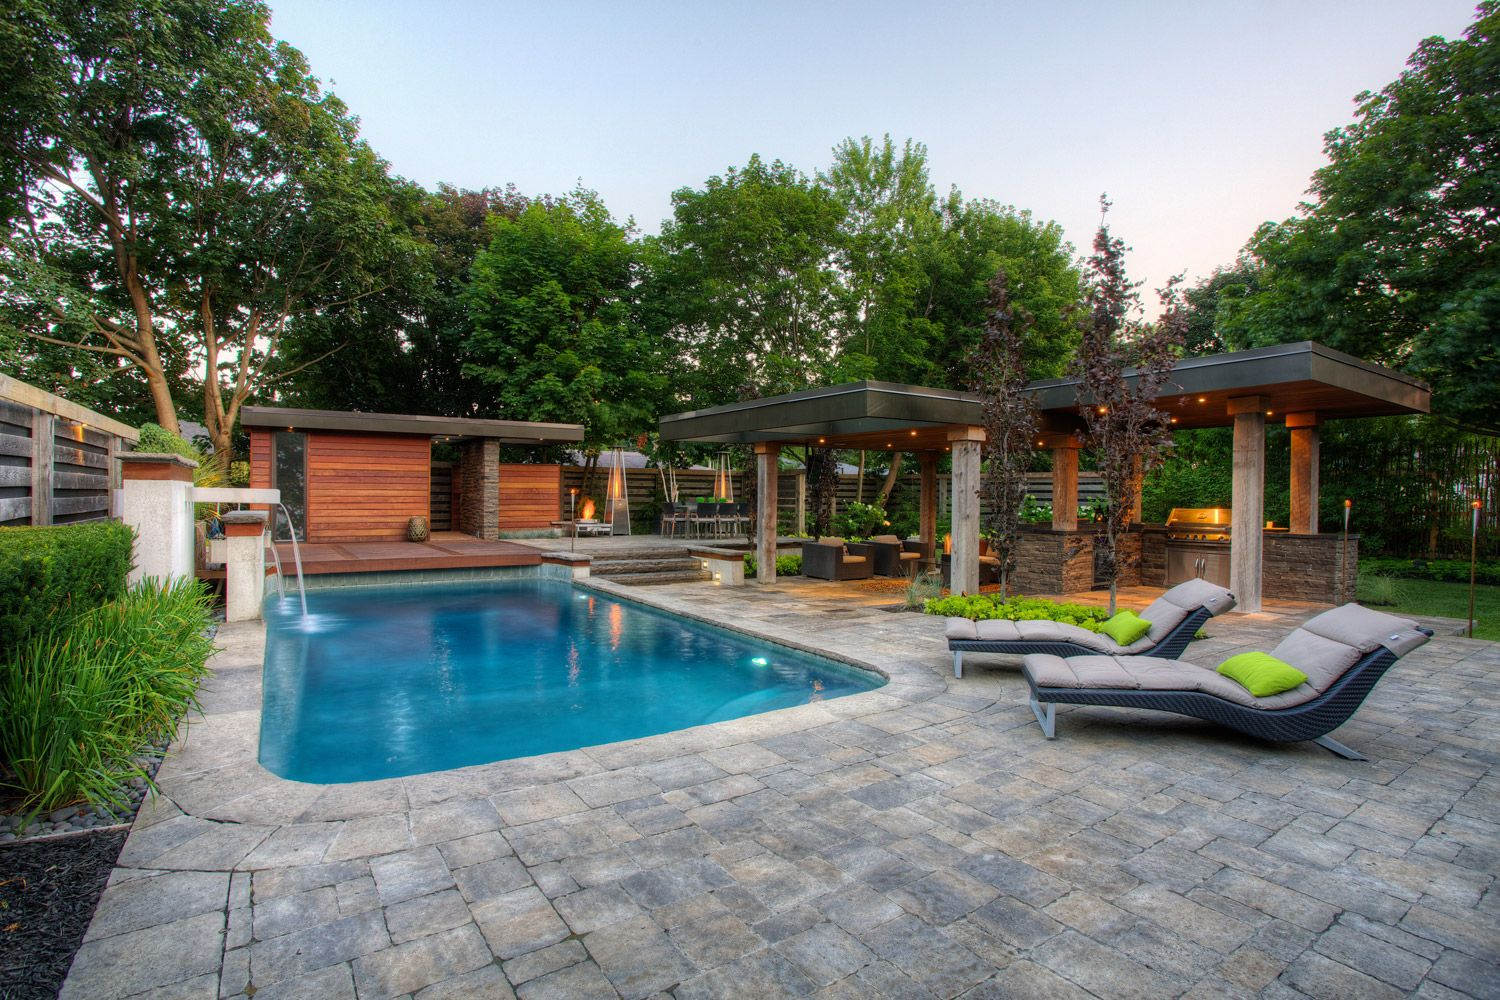 Toronto pool landscaping vaughan landscaping pool pool landscaping pinterest pool - Swimming pool landscape design ideas ...